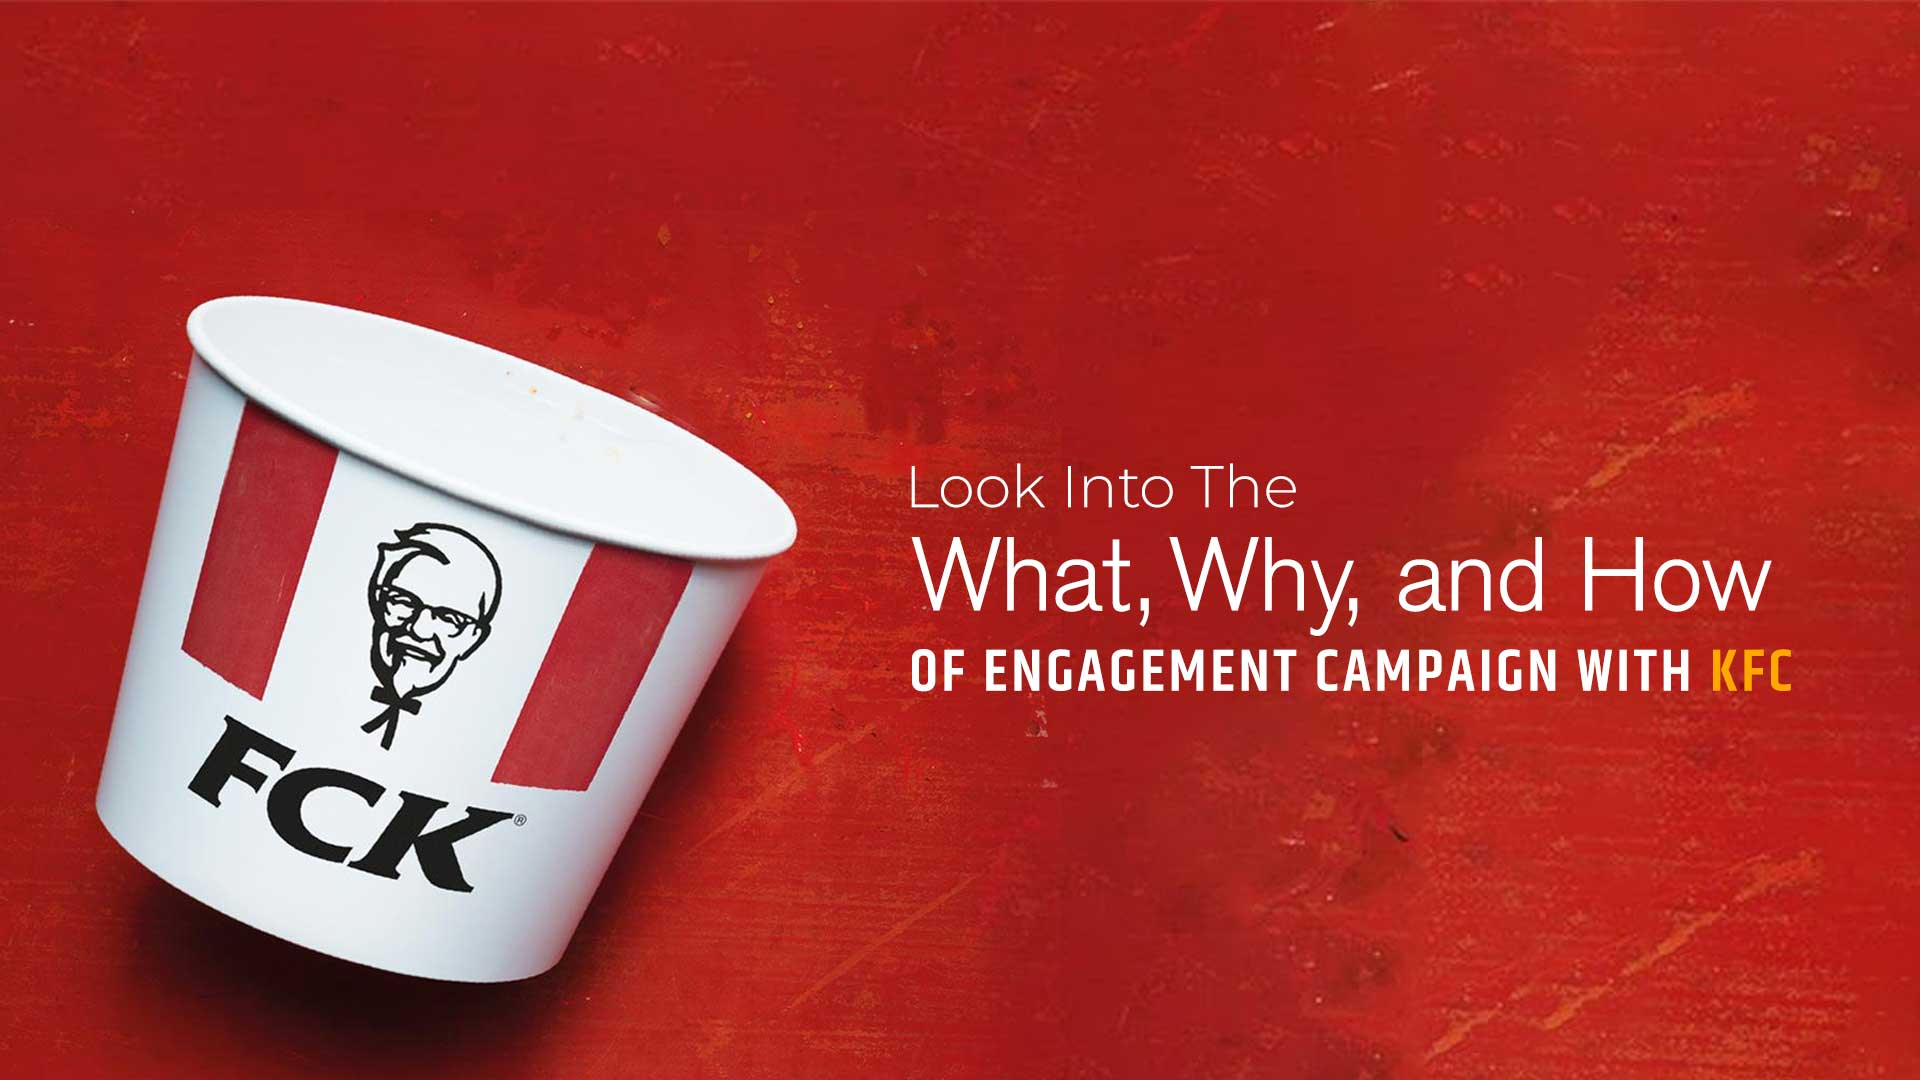 Look Into The ' What, Why, and How' of Engagement Campaign with KFC